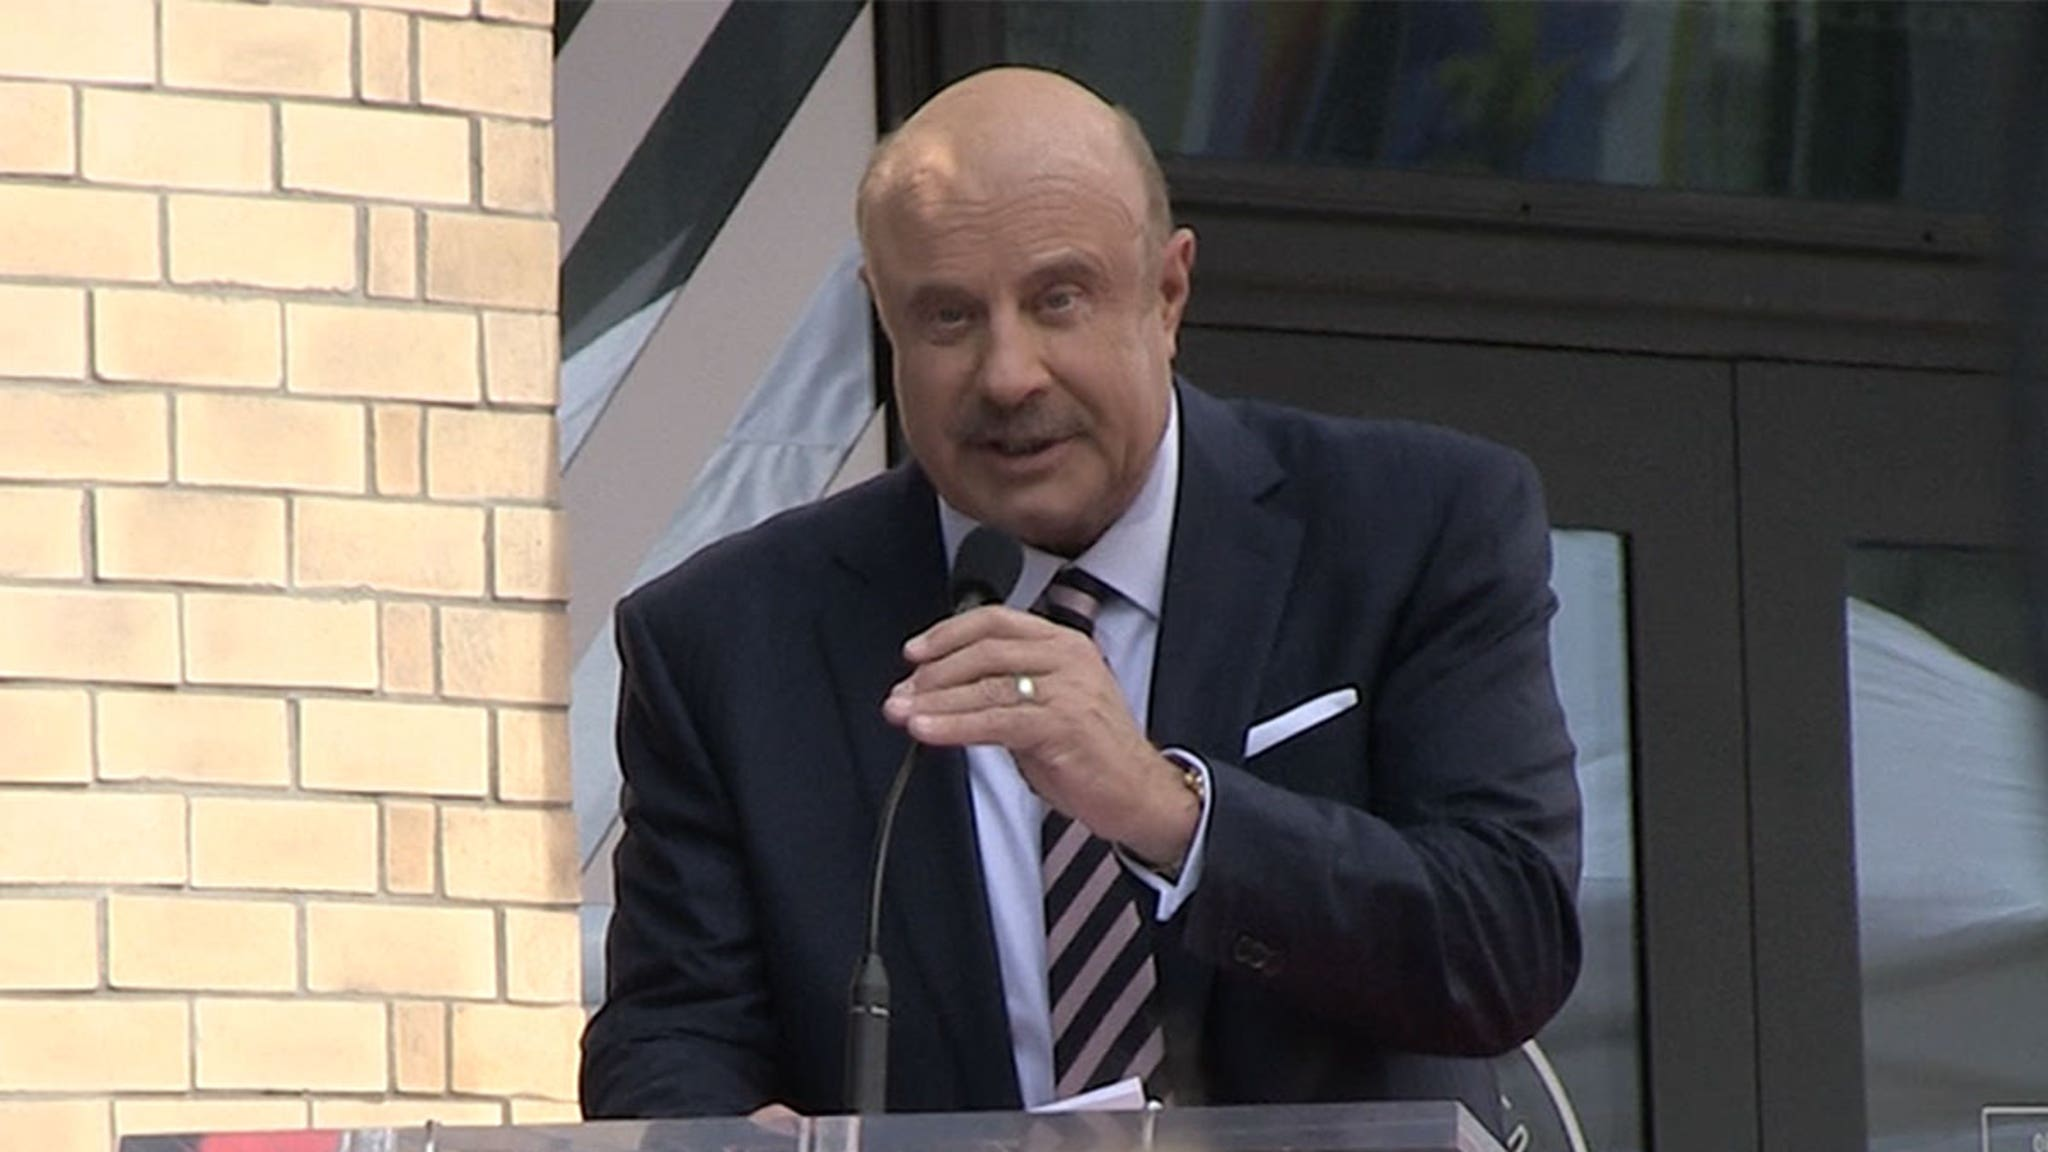 Dr. Phil Jabs at His Dad in Hollywood Walk of Fame Speech